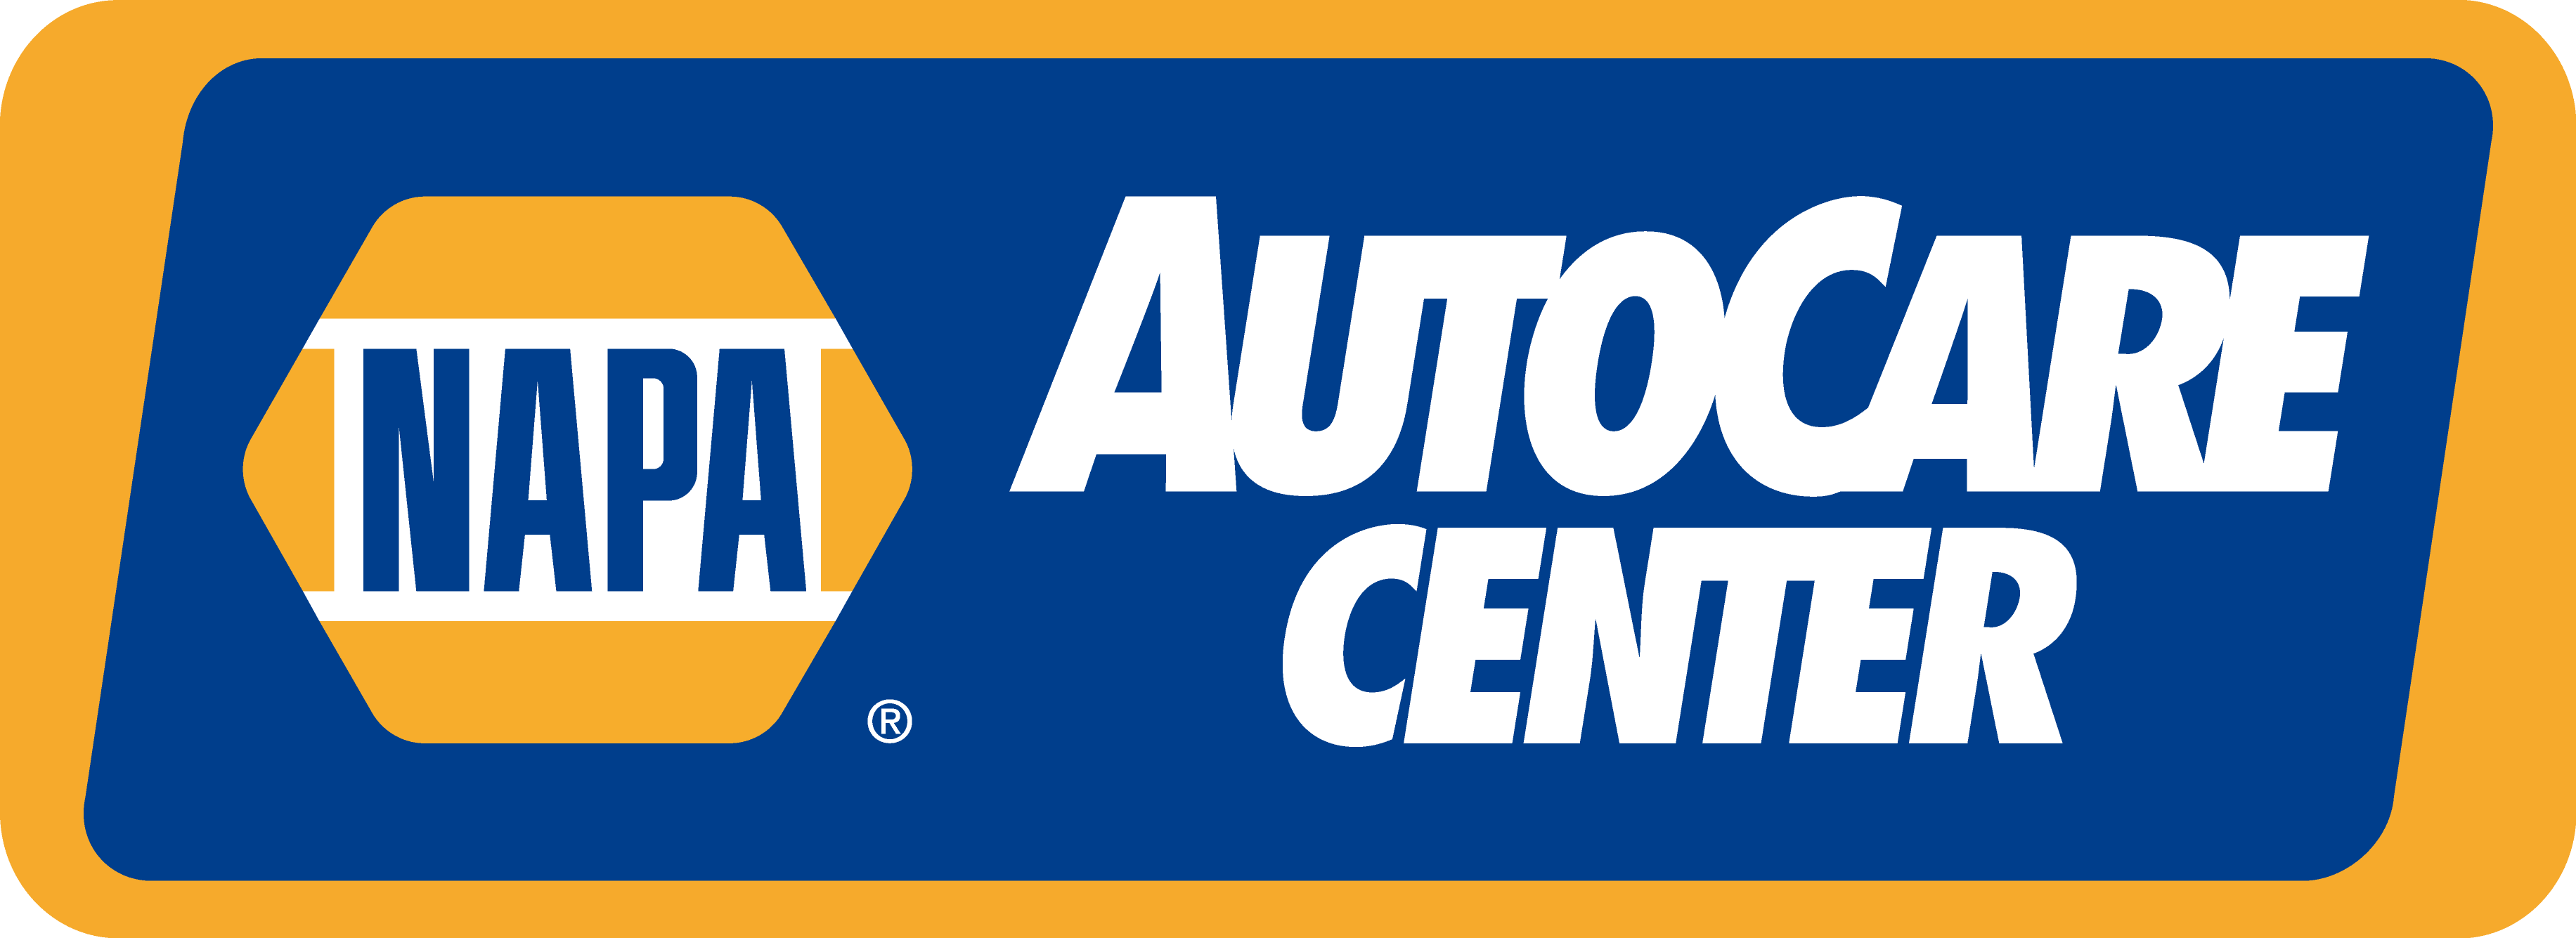 NAPA Auto Care Center, Reliable Automotive, San Marcos, TX, 78666